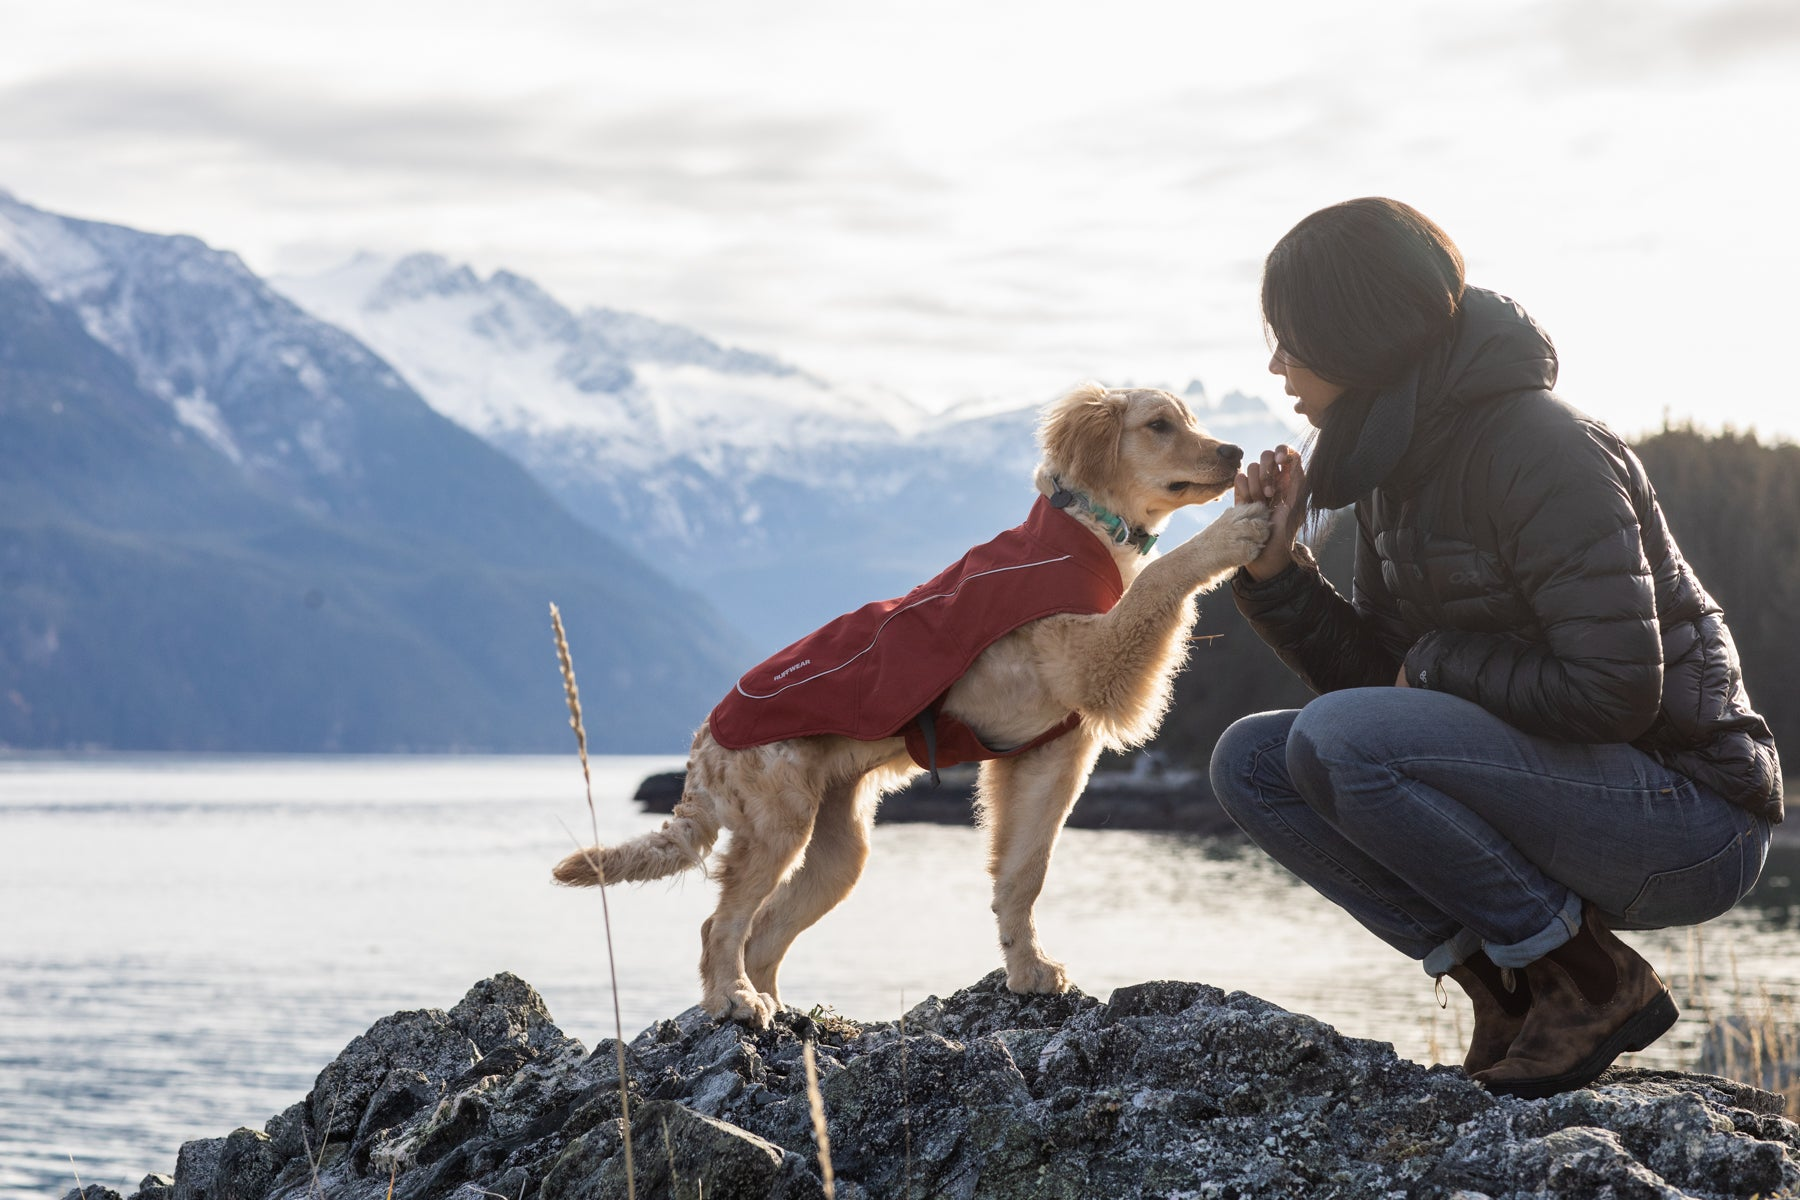 Sammy in Overcoat jacket gives Chris a high five by the river.